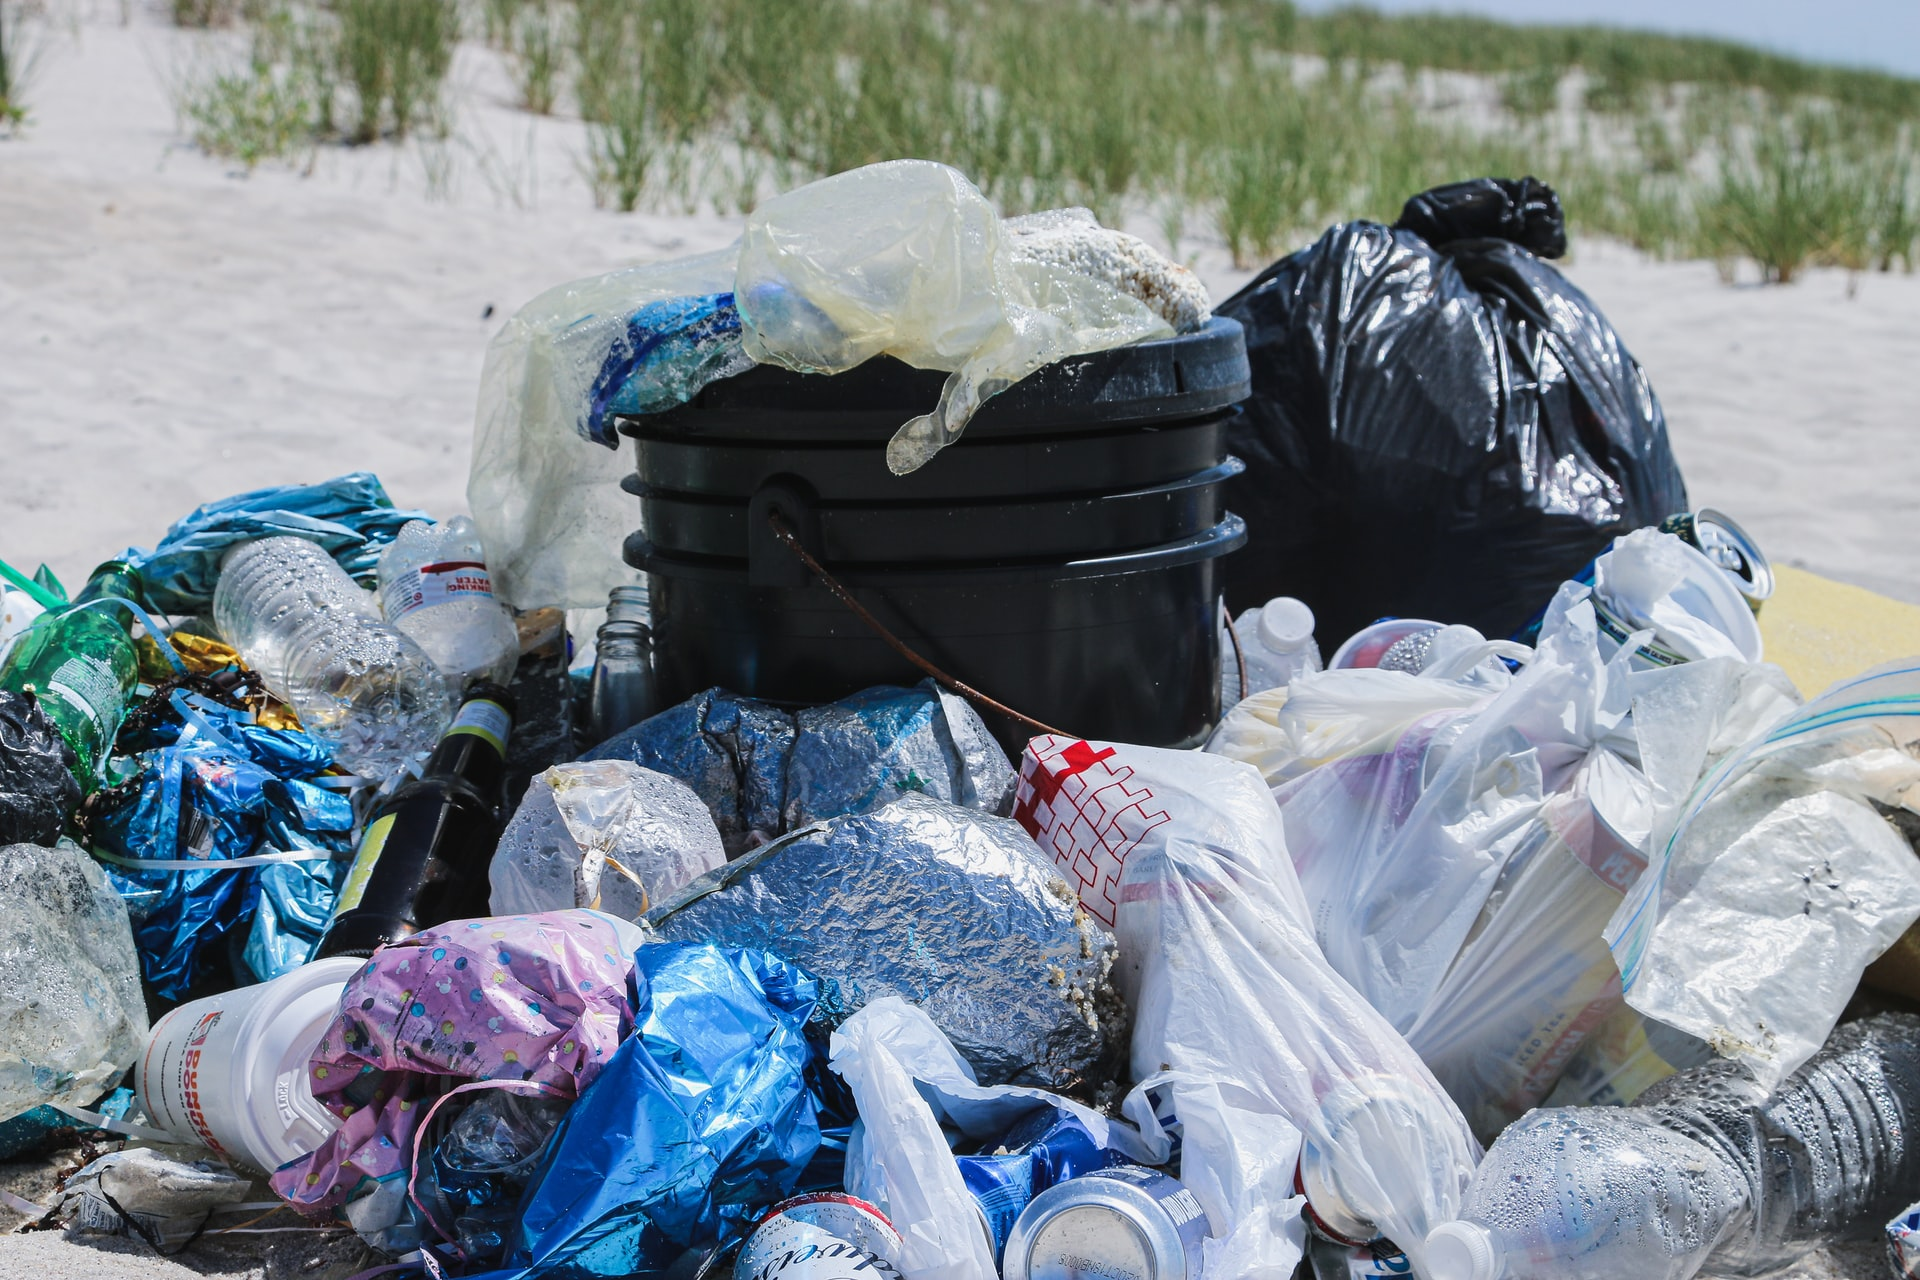 World first plastic ban - Federal Government